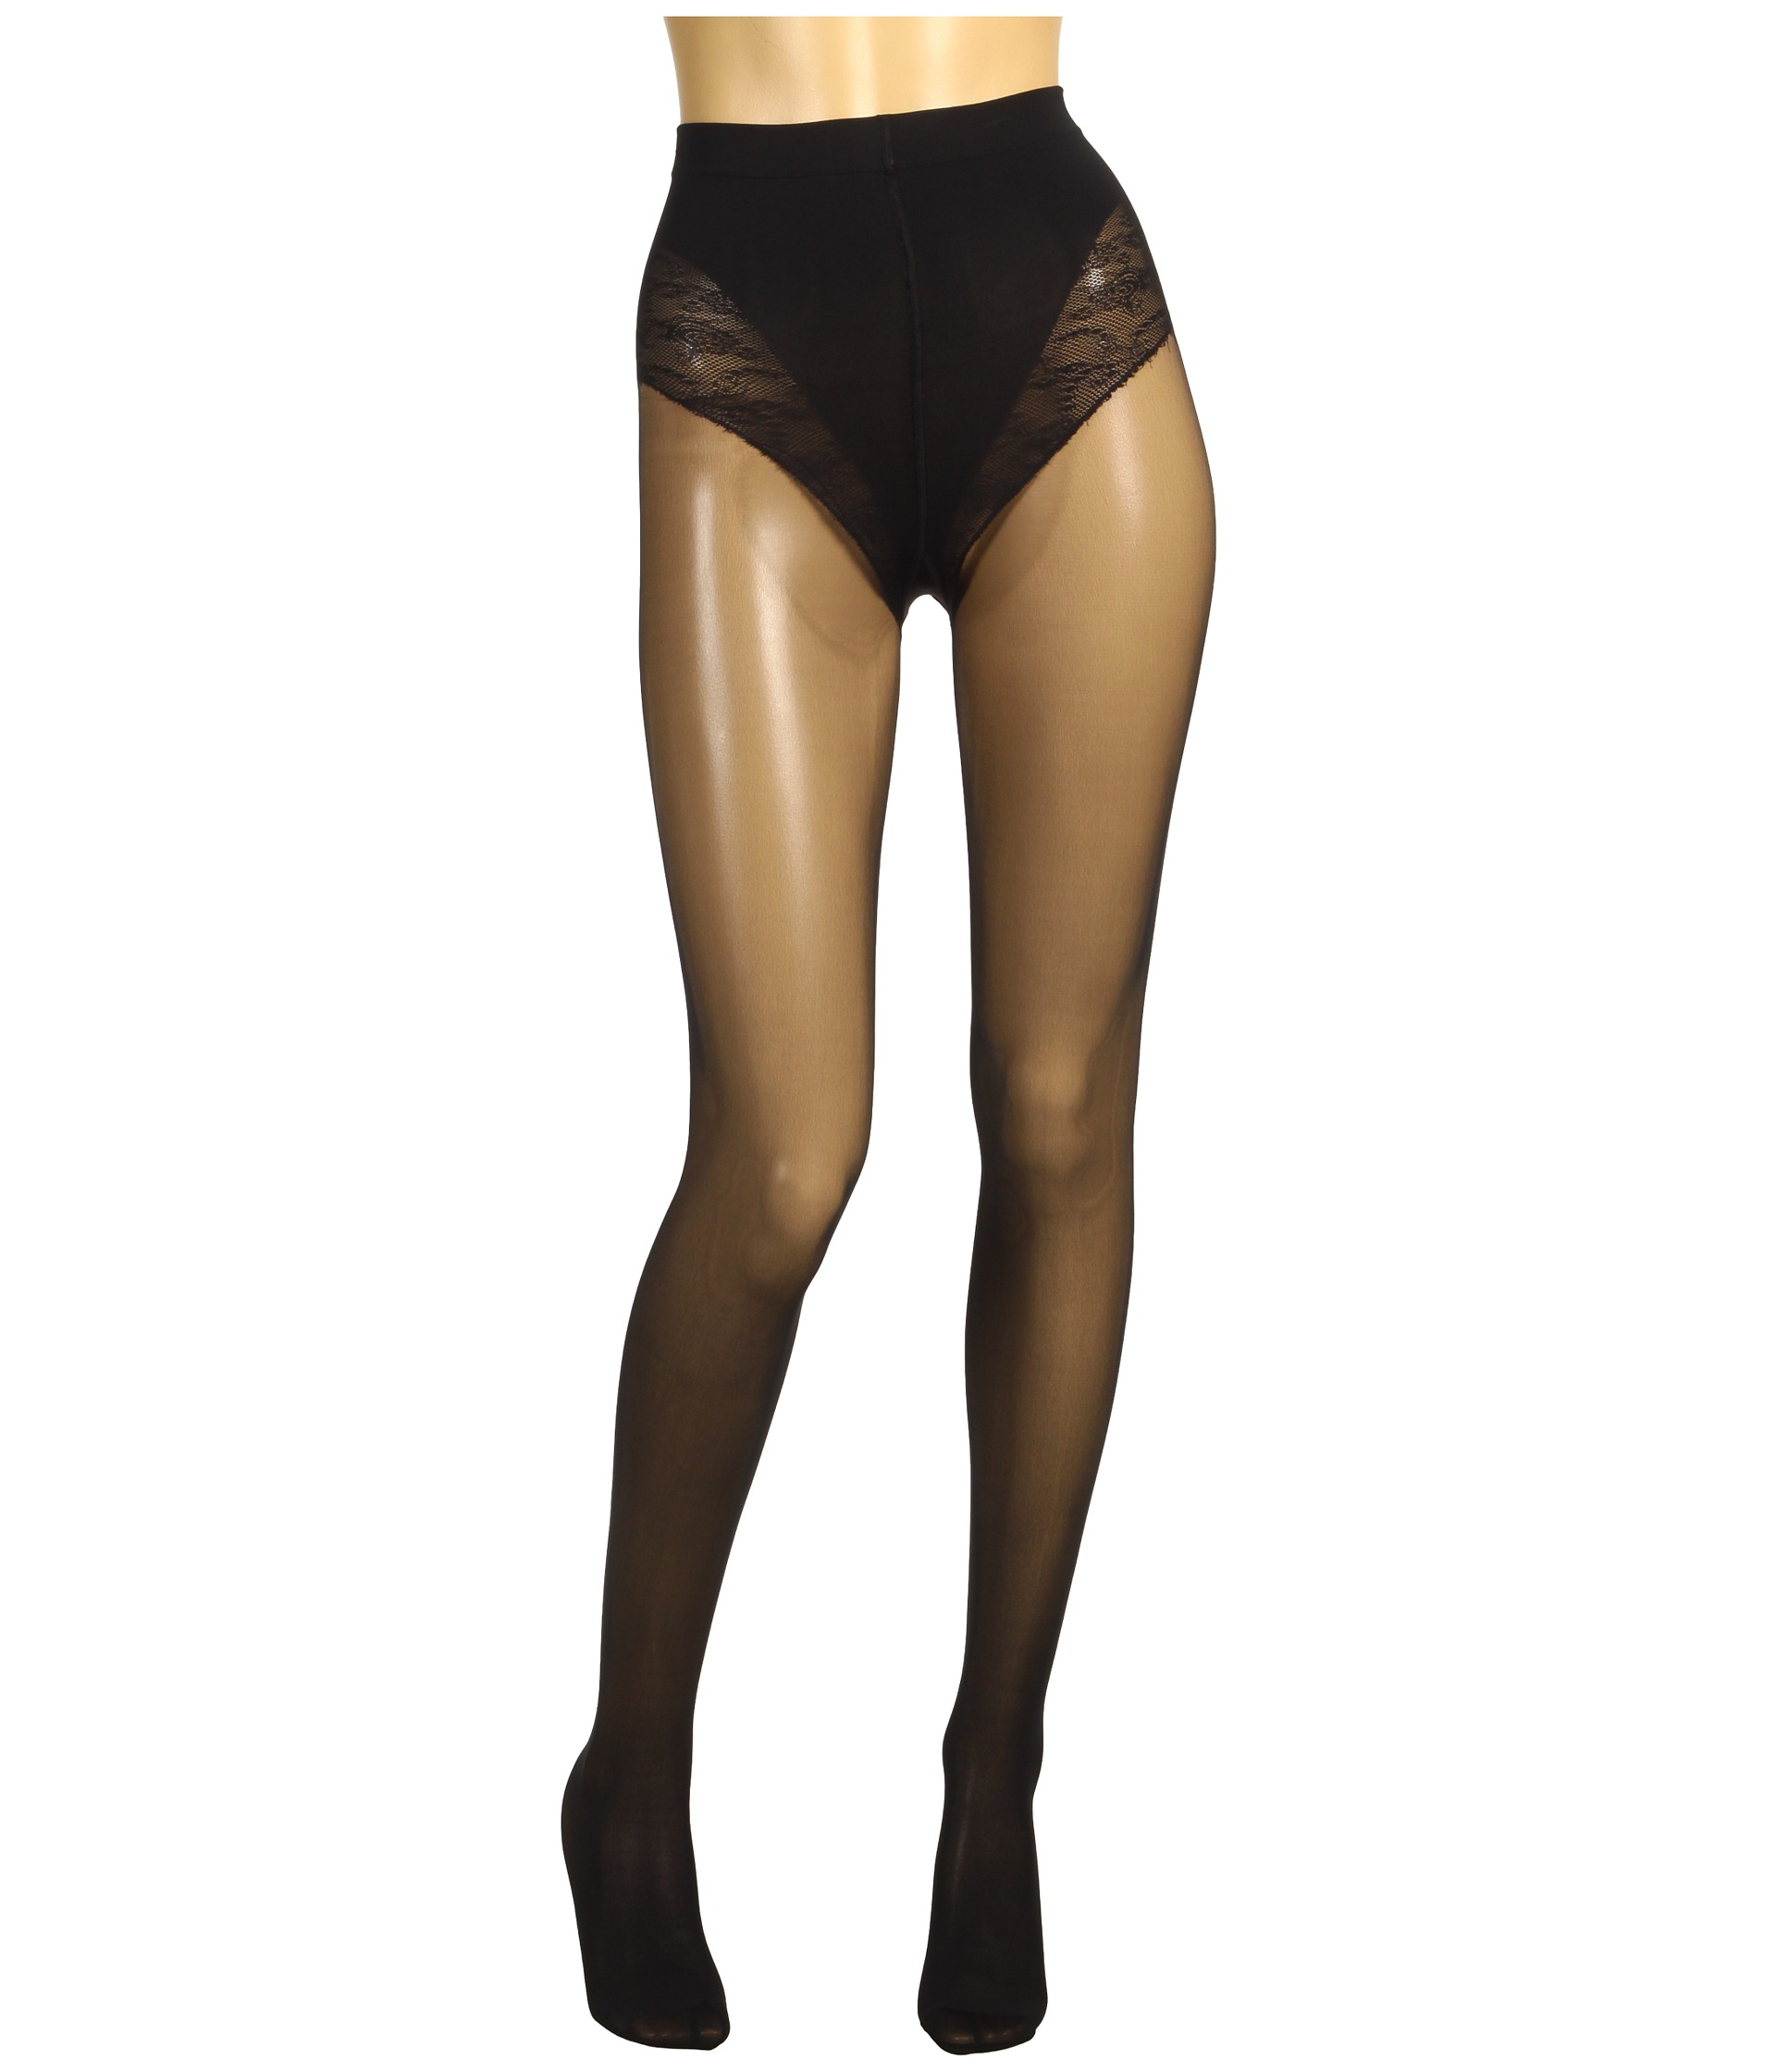 Shop control-top hosiery at Bare Necessities! We carry slimming control-top leggings, tights & more in a wide variety of colors, patterns and materials.